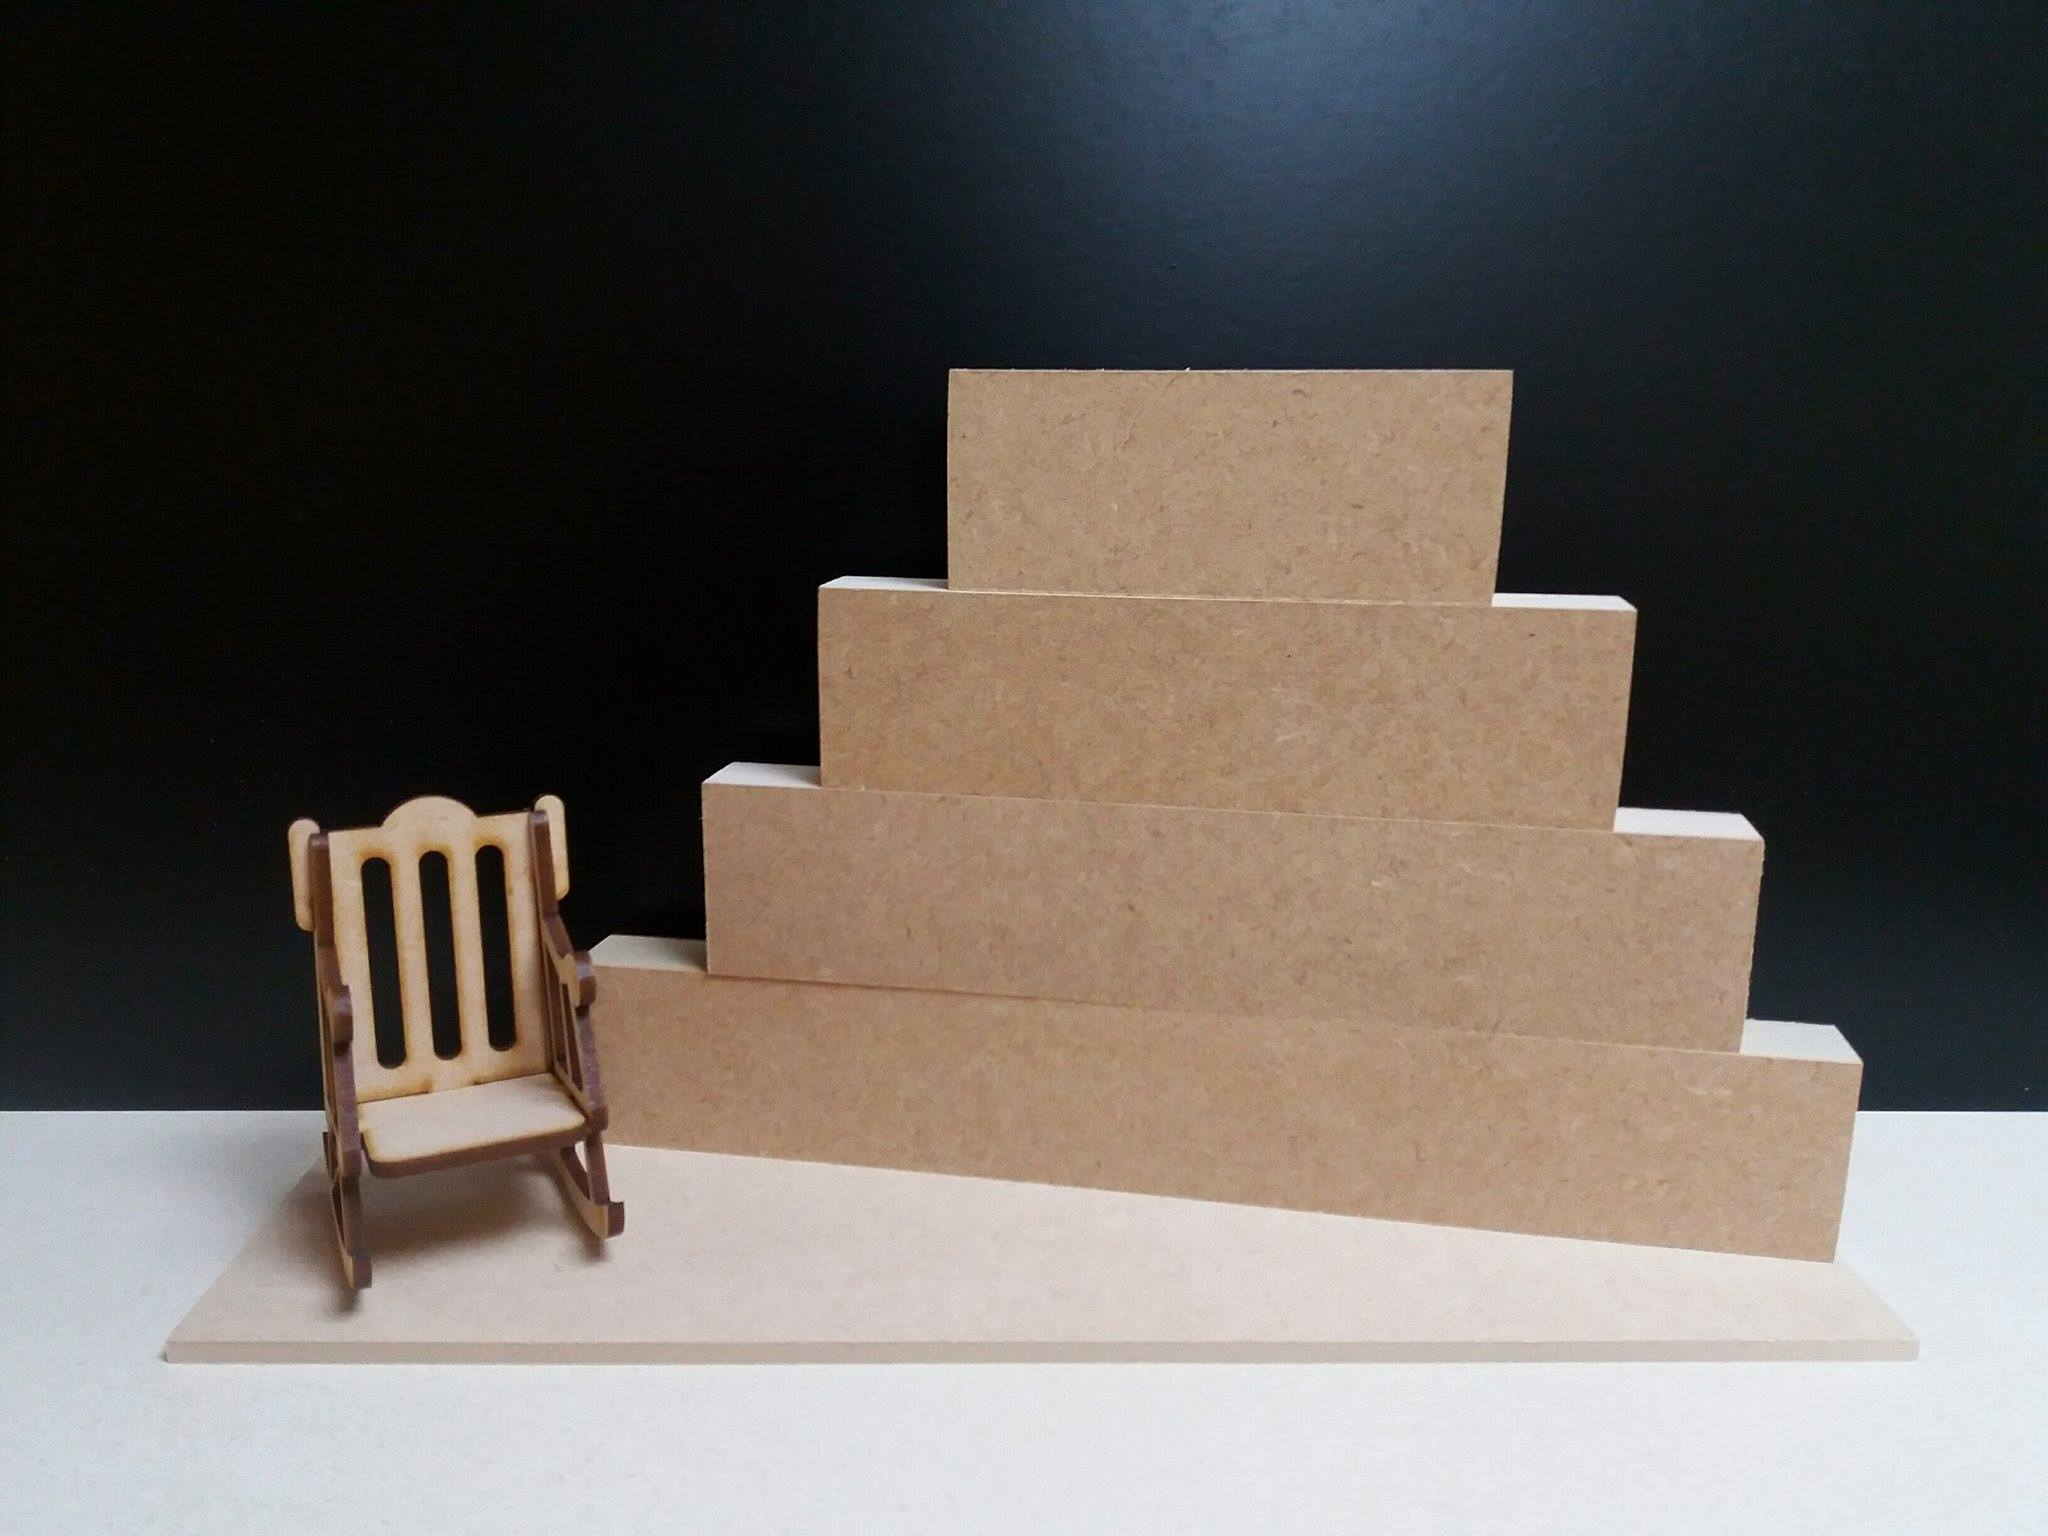 Mdf Stacking Blocks With Plinth Amp Rocking Chair Woodform